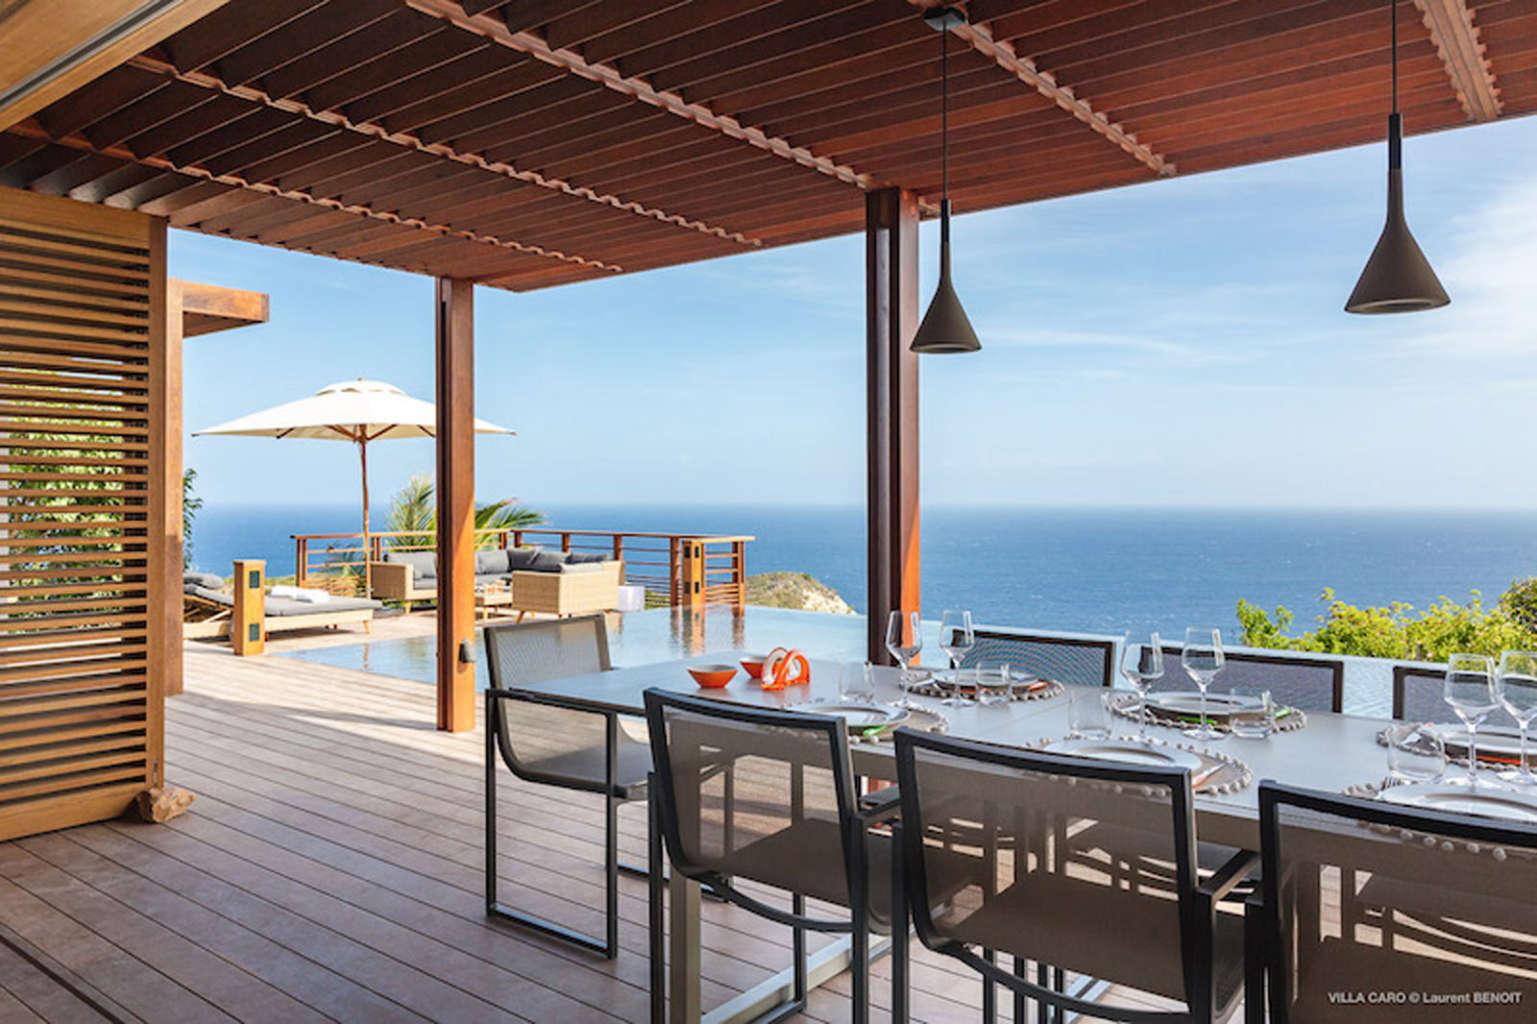 Villa Caro - Ultra Modern Villa Rental St Barth Gouverneur with large ocean view - Patio and Sea View